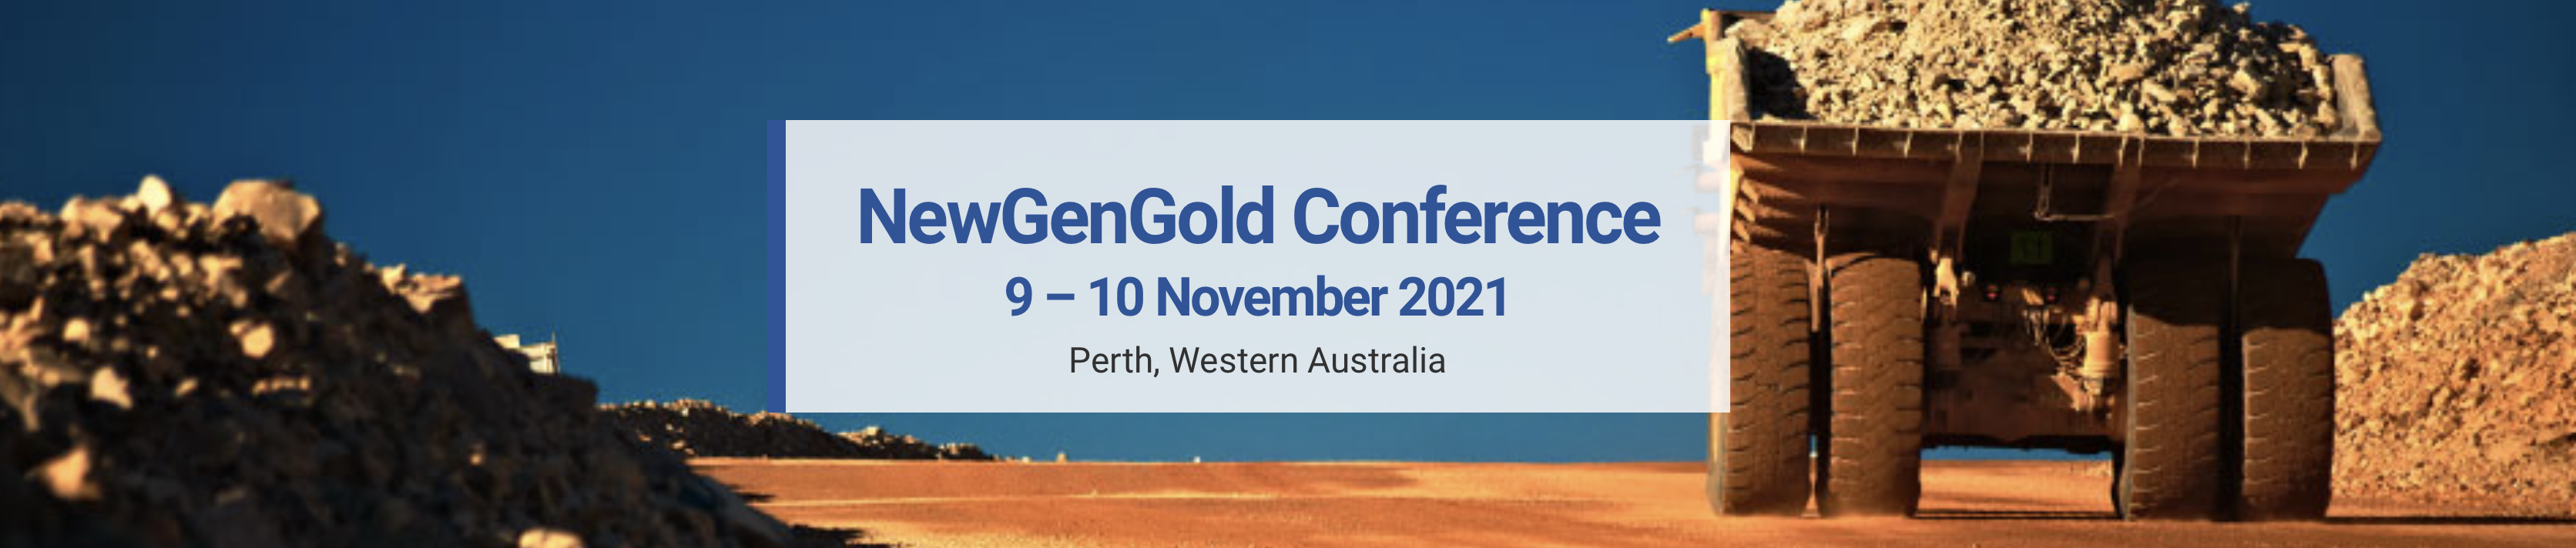 NewGenGold Conference